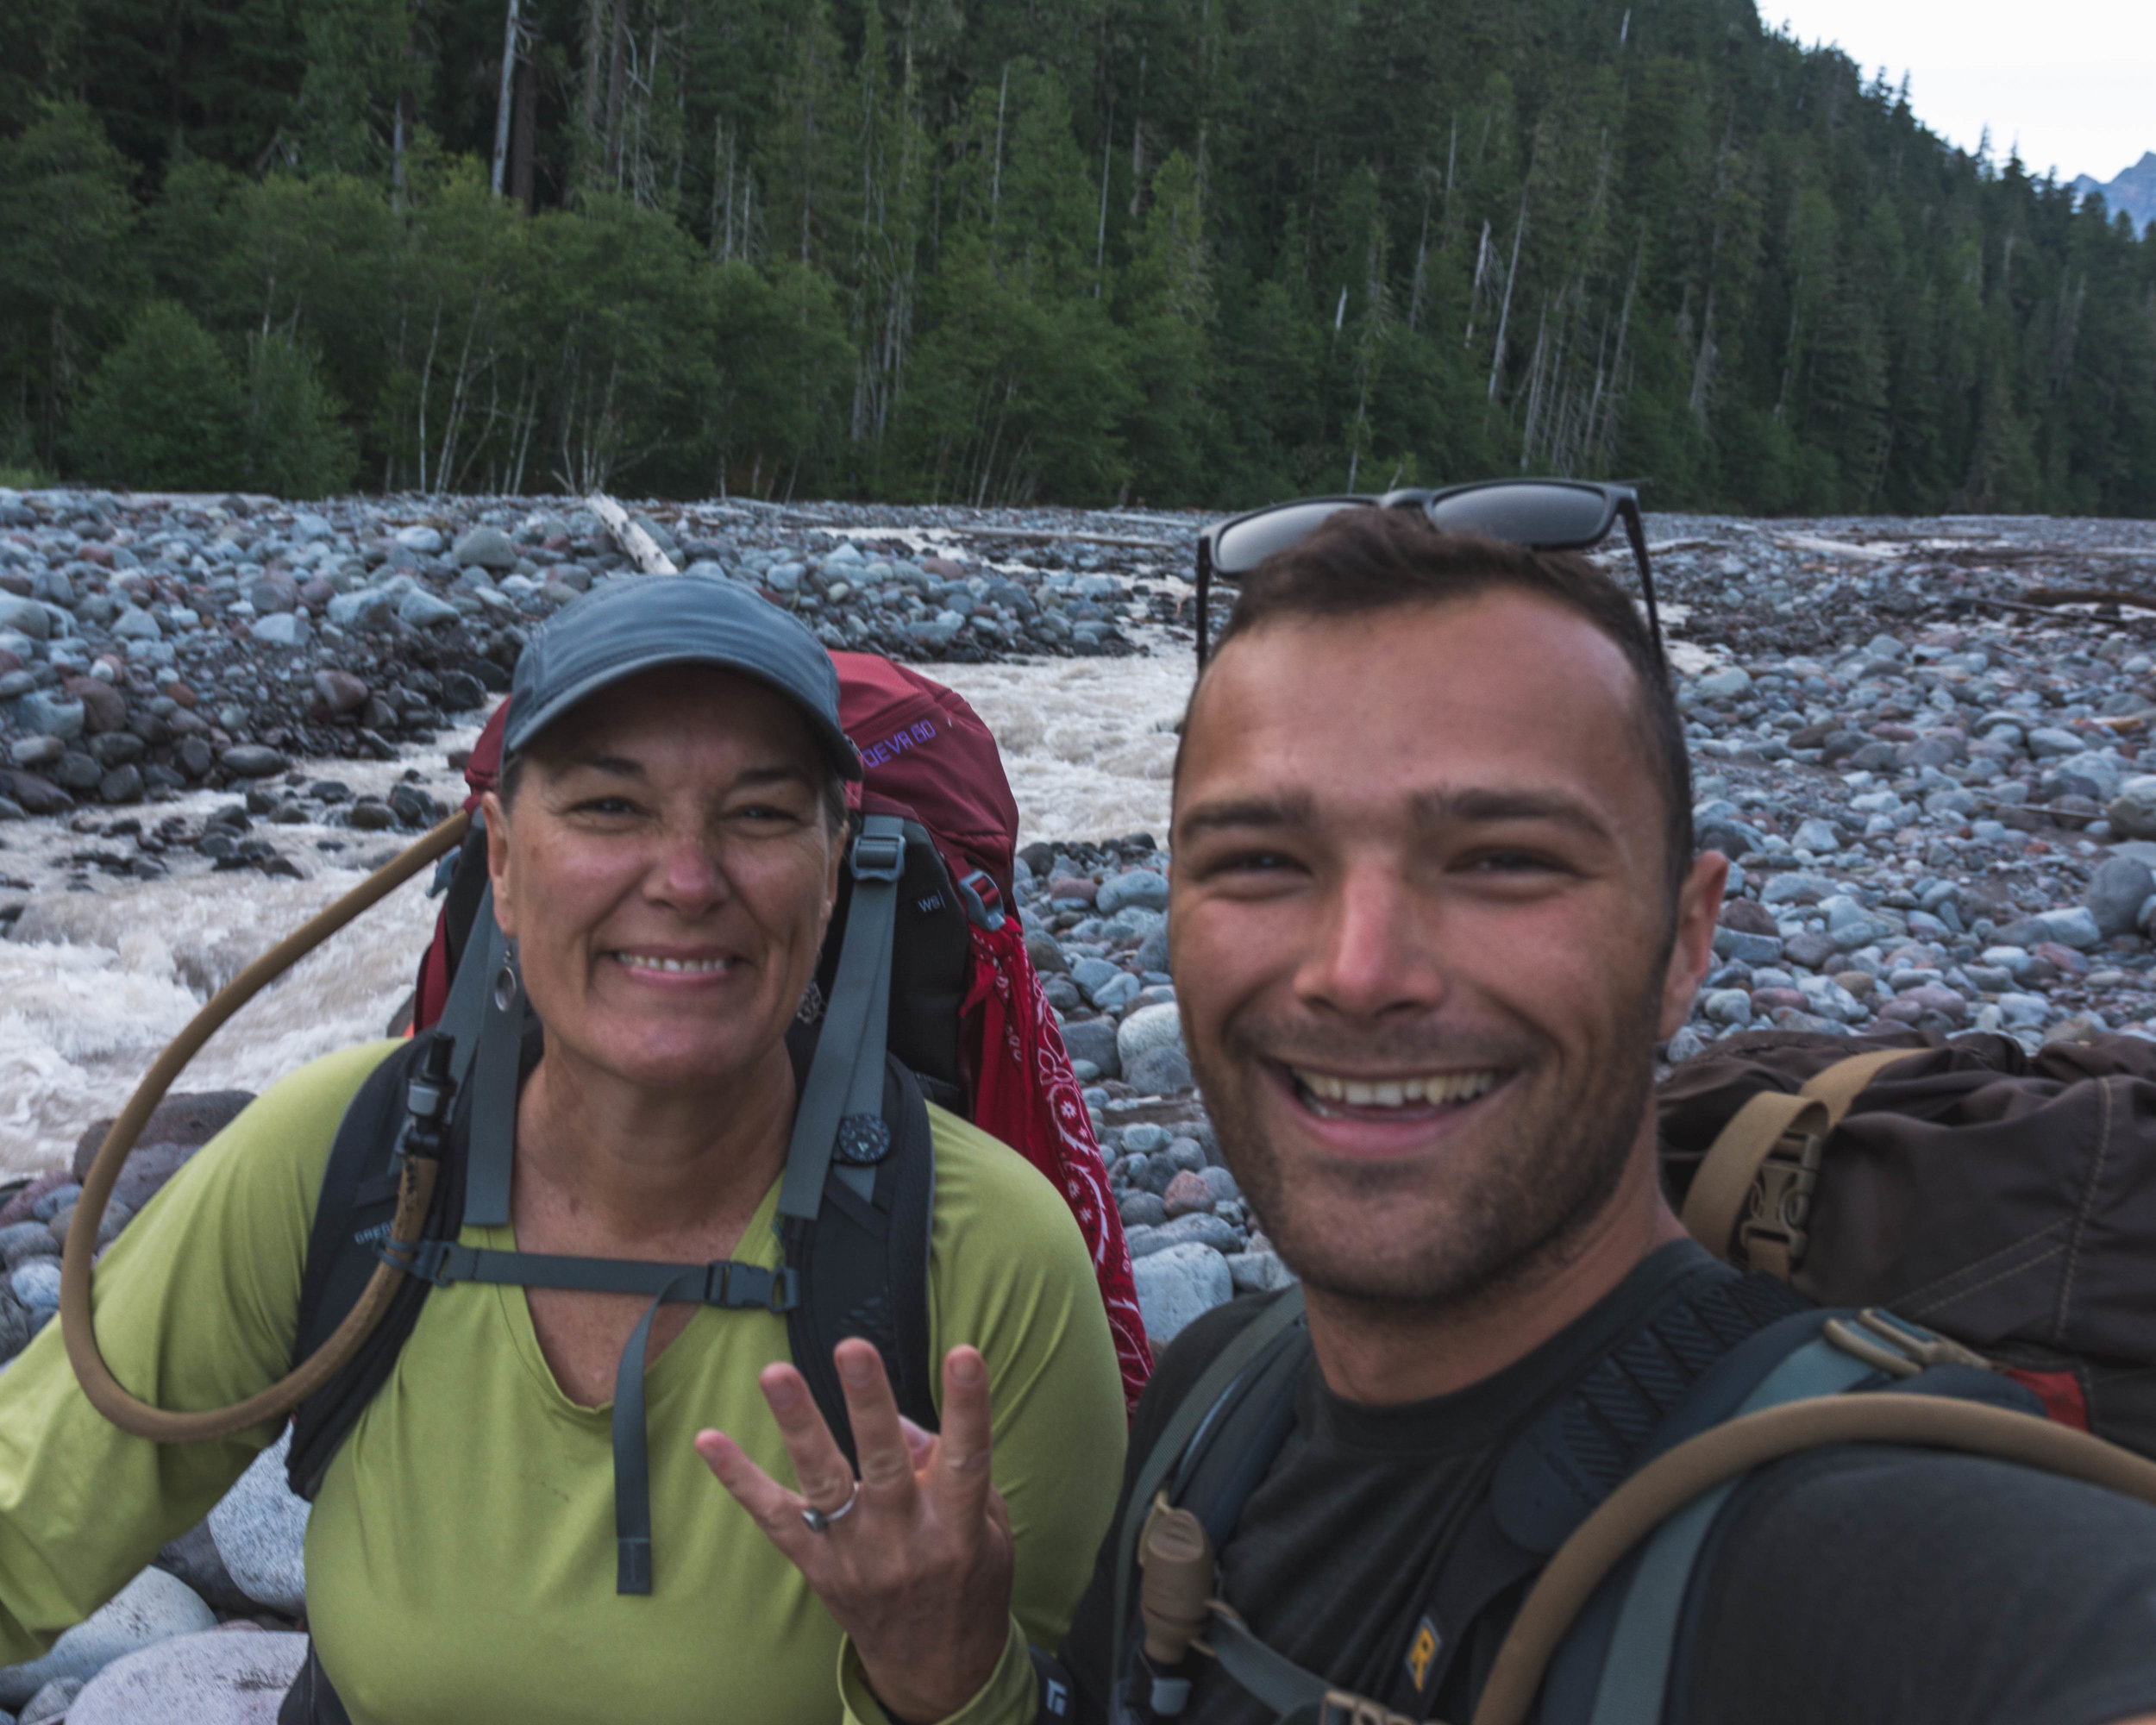 01AUG18 - S. Mowich River to Golden Lakes Camp